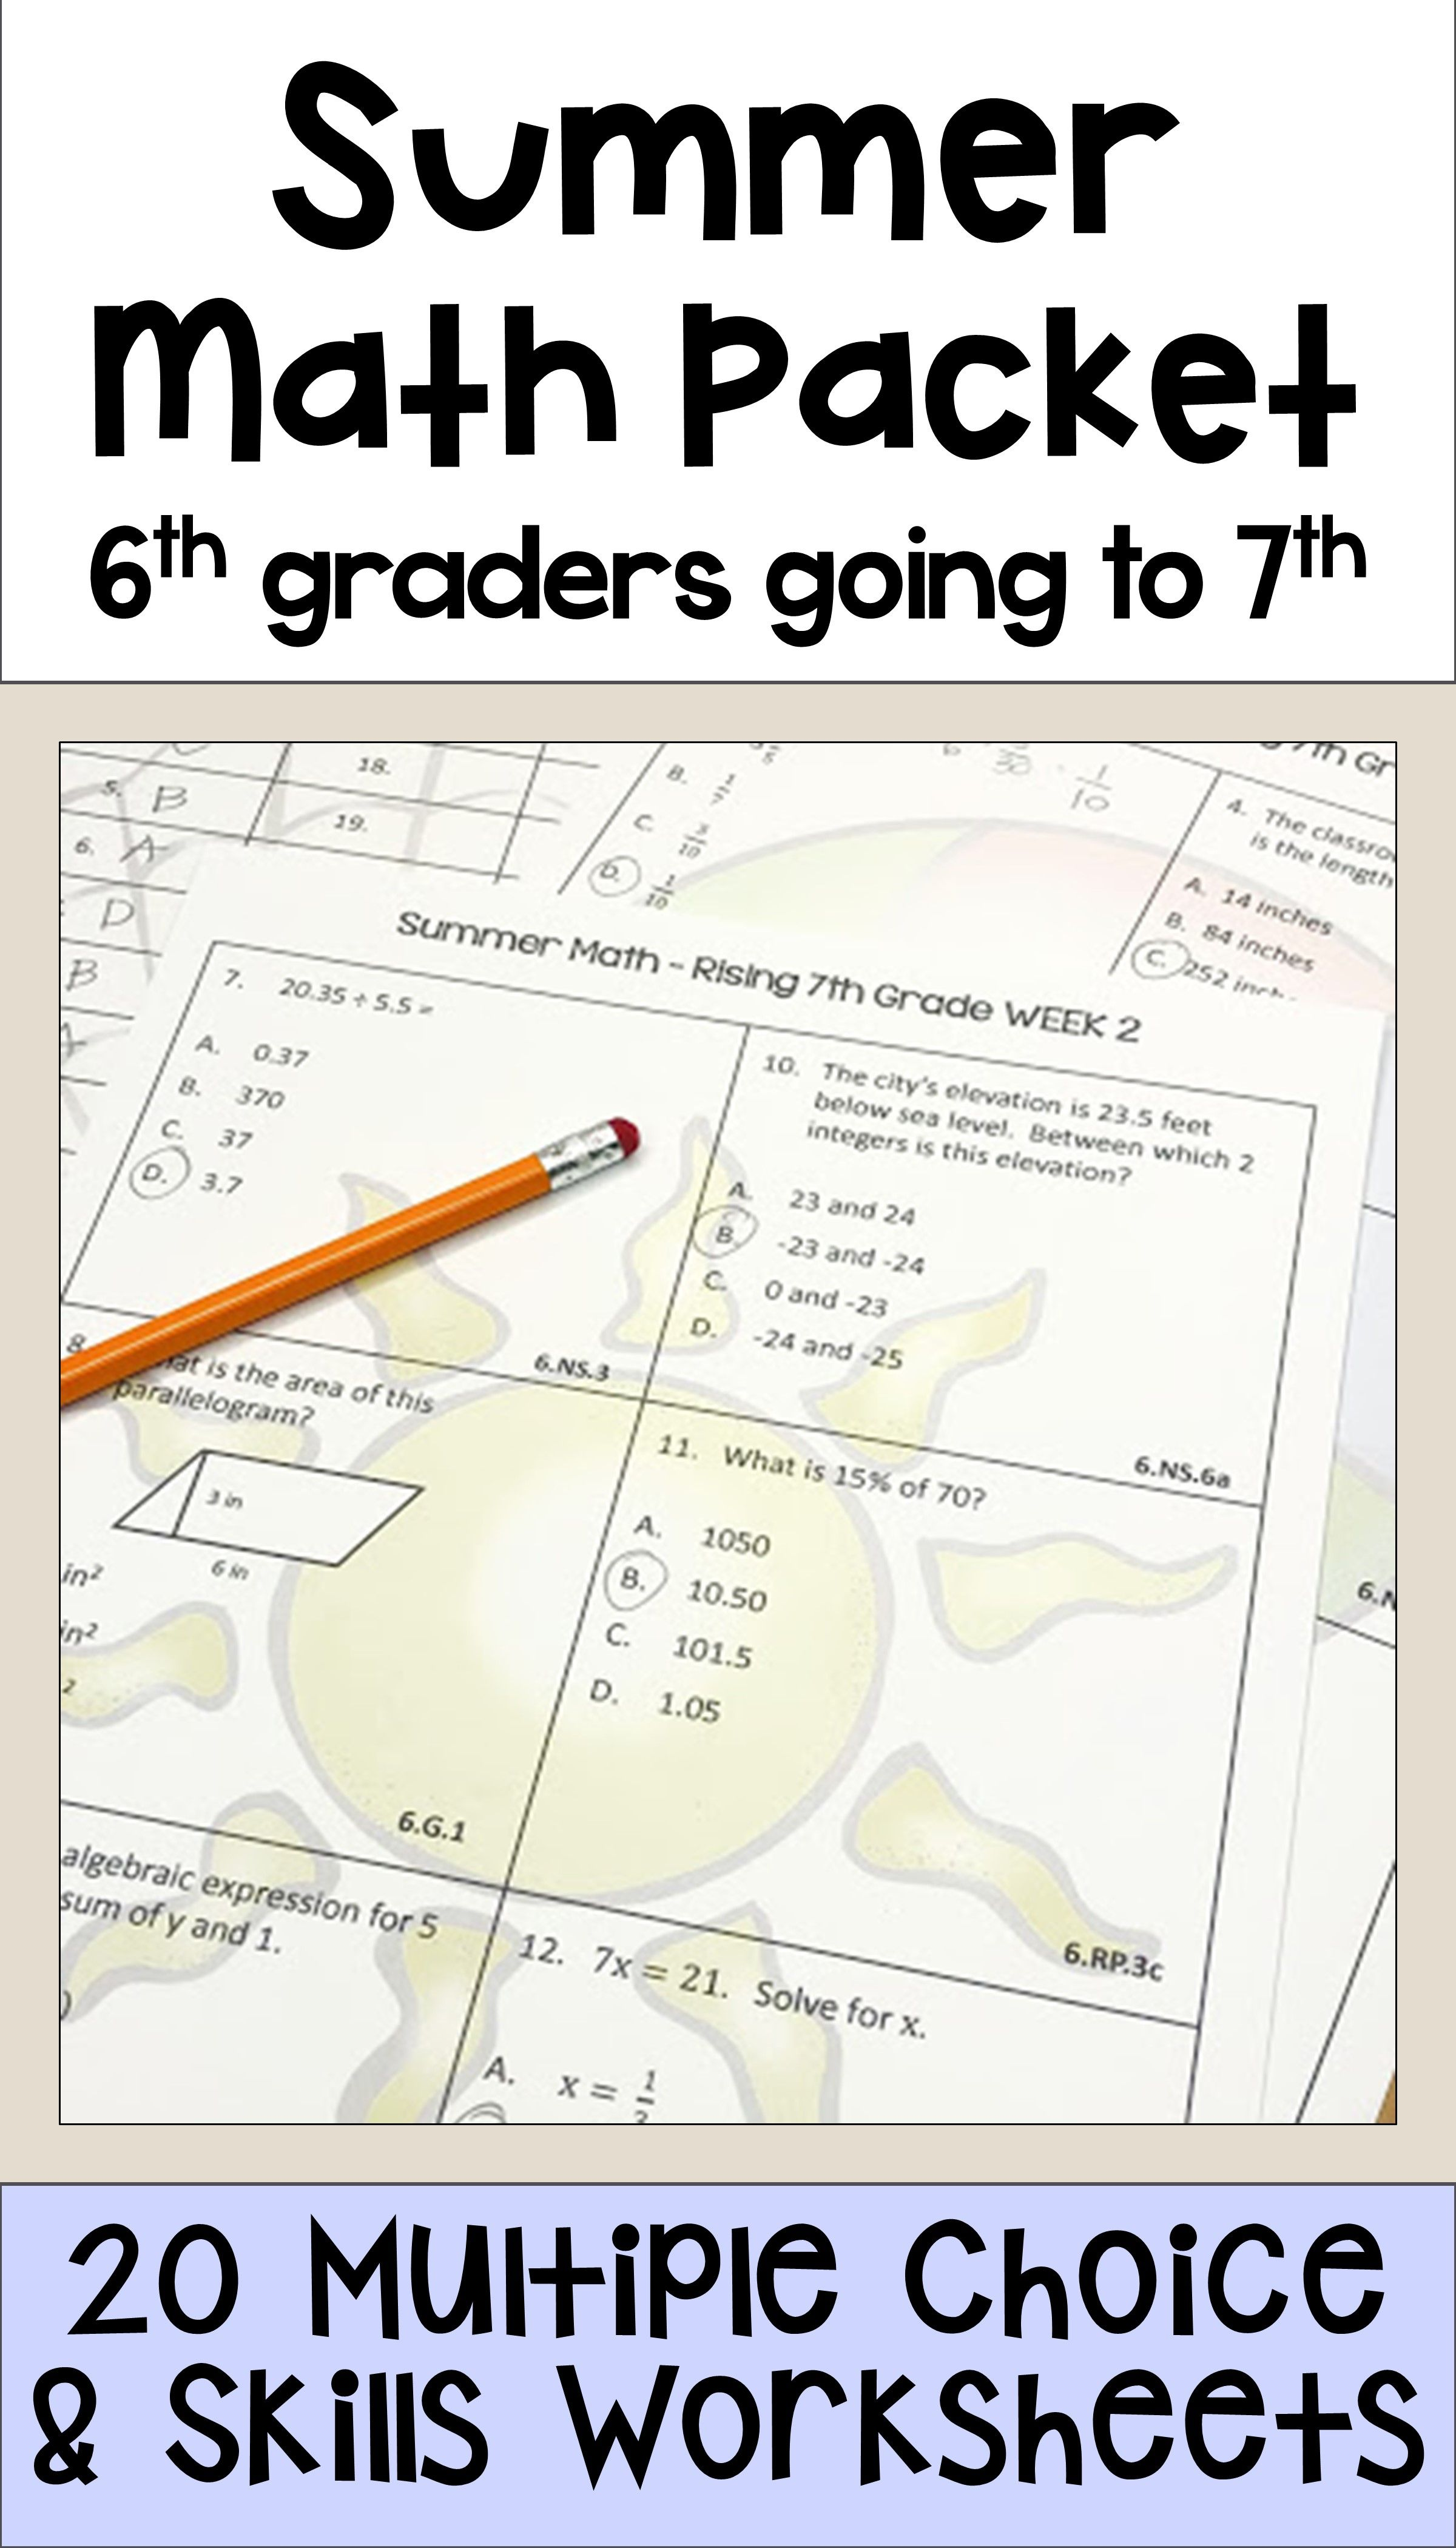 Summer Math Packet For Rising 7th Graders